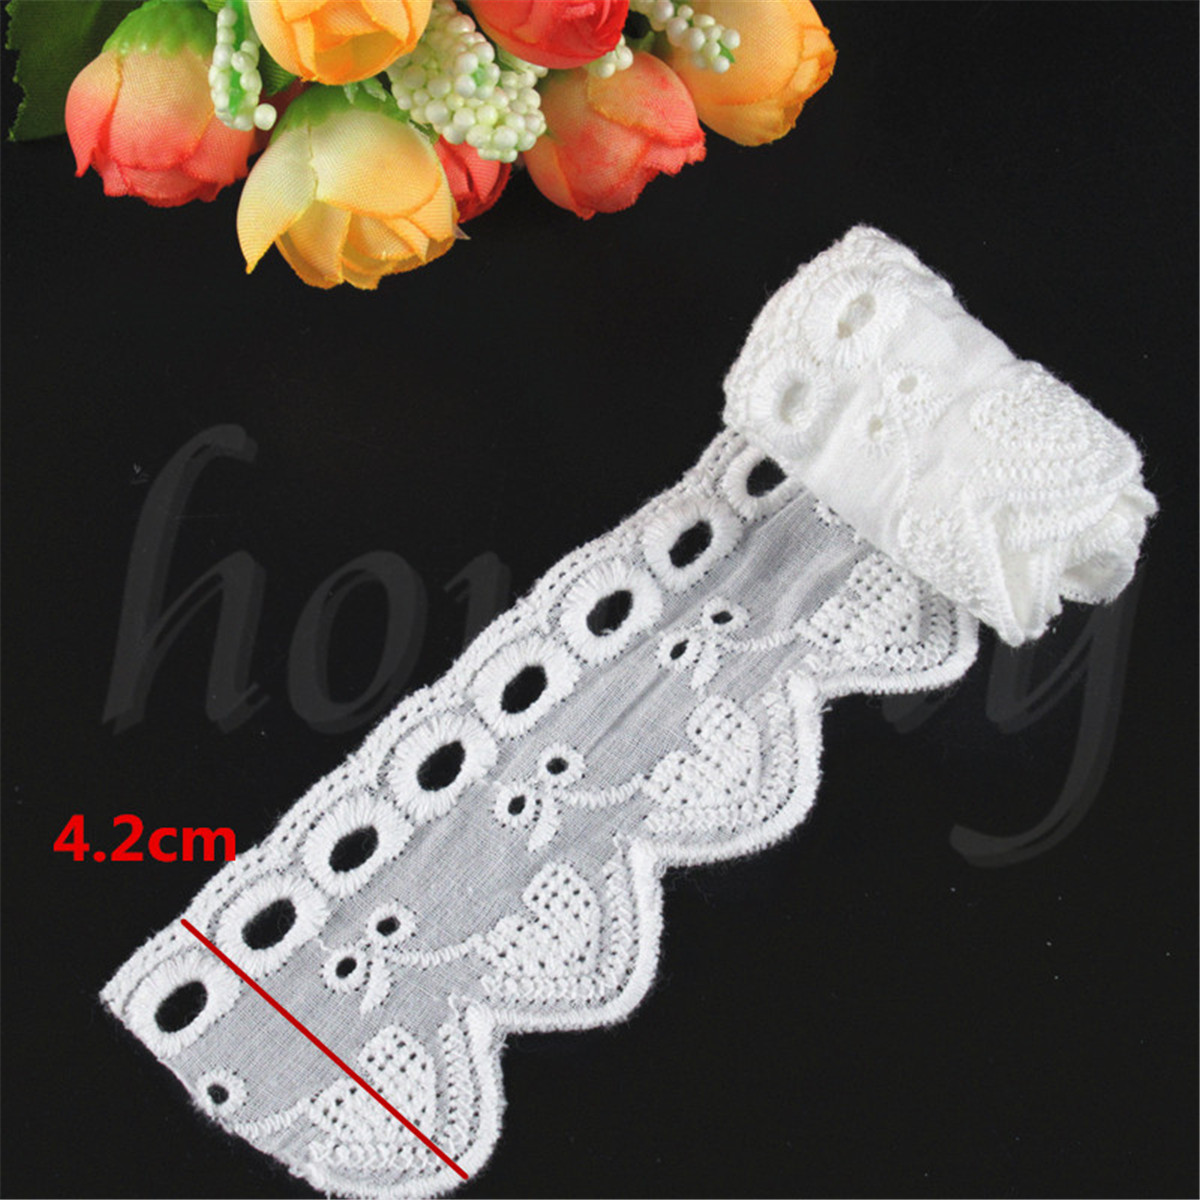 1-Yard-Cotton-Crochet-White-Lace-Trim-Wedding-Ribbon-Embroidered-Sewing-Craft